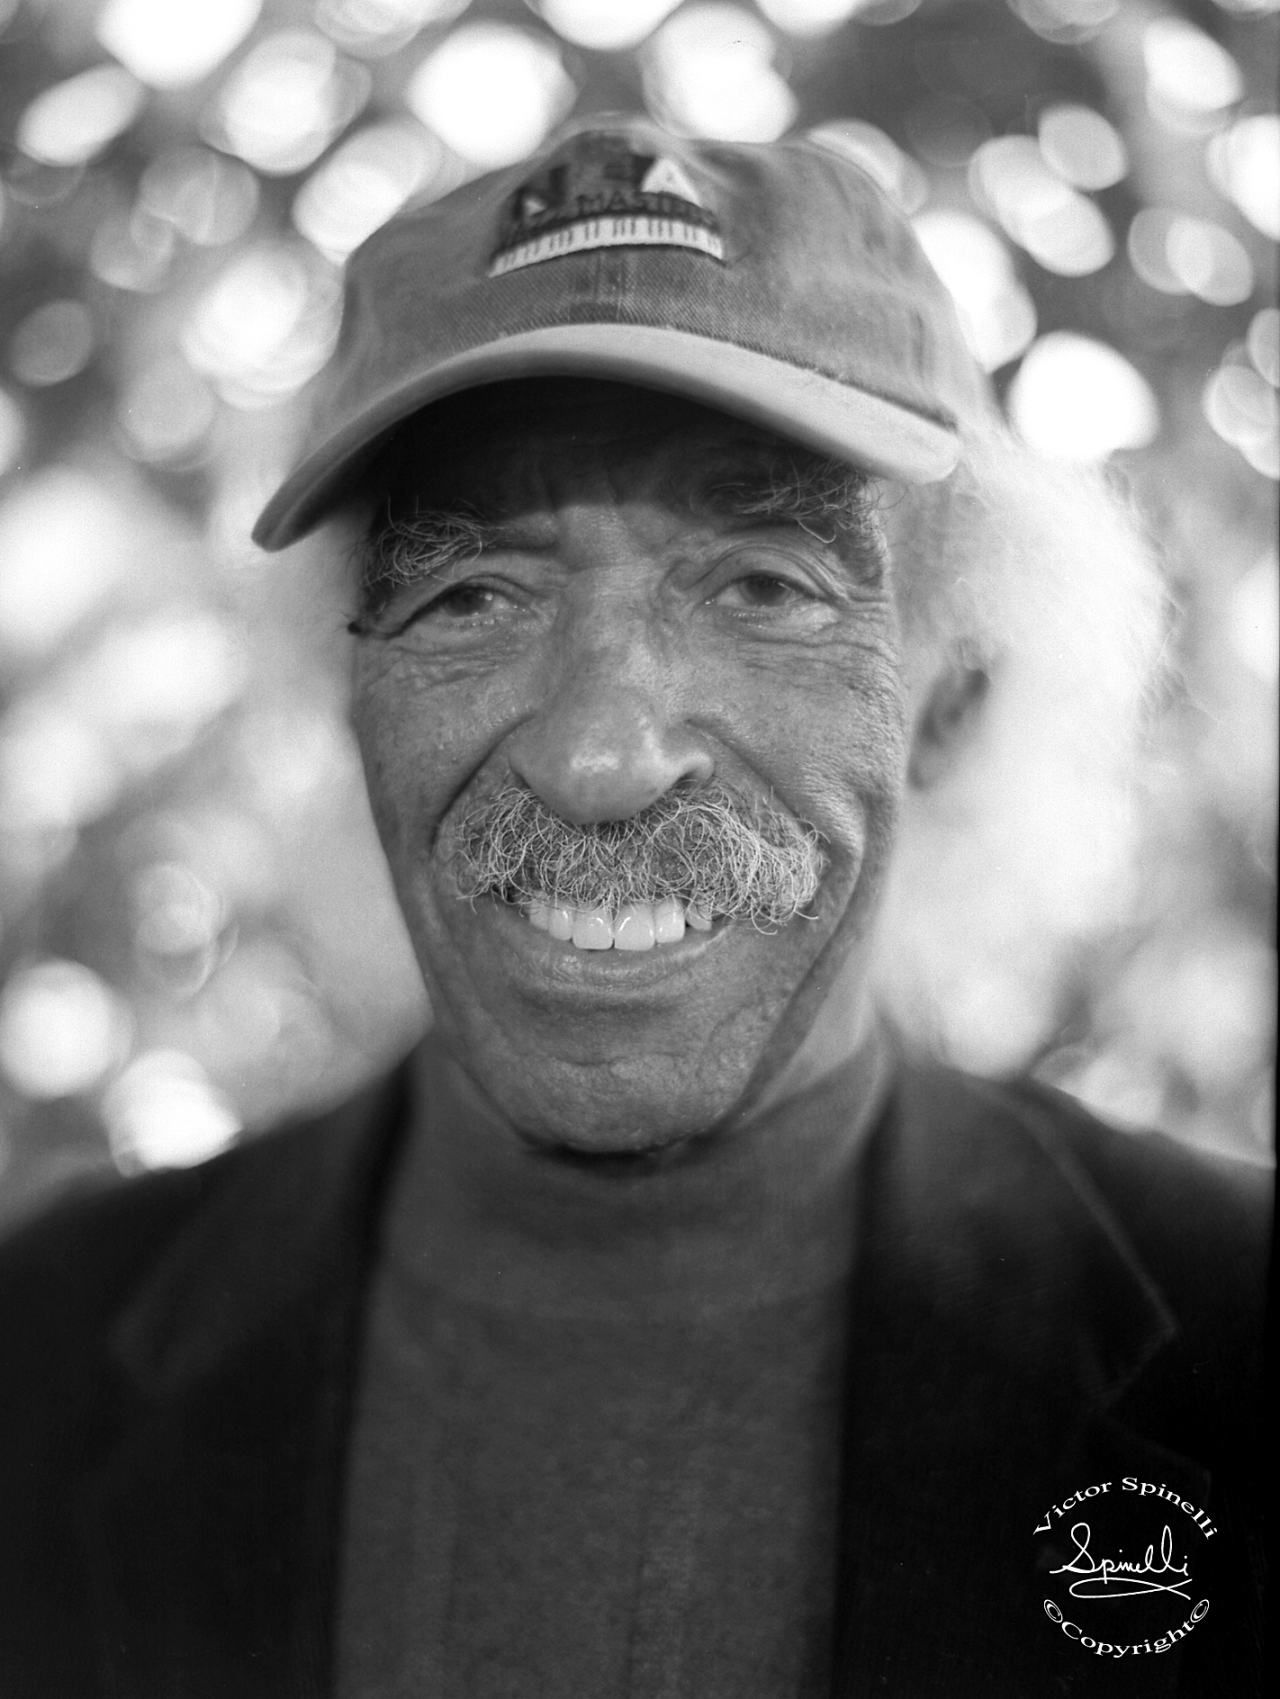 R.I.P. Gerald Wilson, world renowned Jazz Arranger and Trumpeter. He past away on  September 8, 2014 at the age of 96. I was fortunate to take this portrait of his, in Beverly Hills,  a few years back. He wrote arrangements for many great musicians including Duke Ellington, Dizzy Gillespie and Ray Charles to name just a few . God bless his soul…. photo: Victor Spinelli Archive.